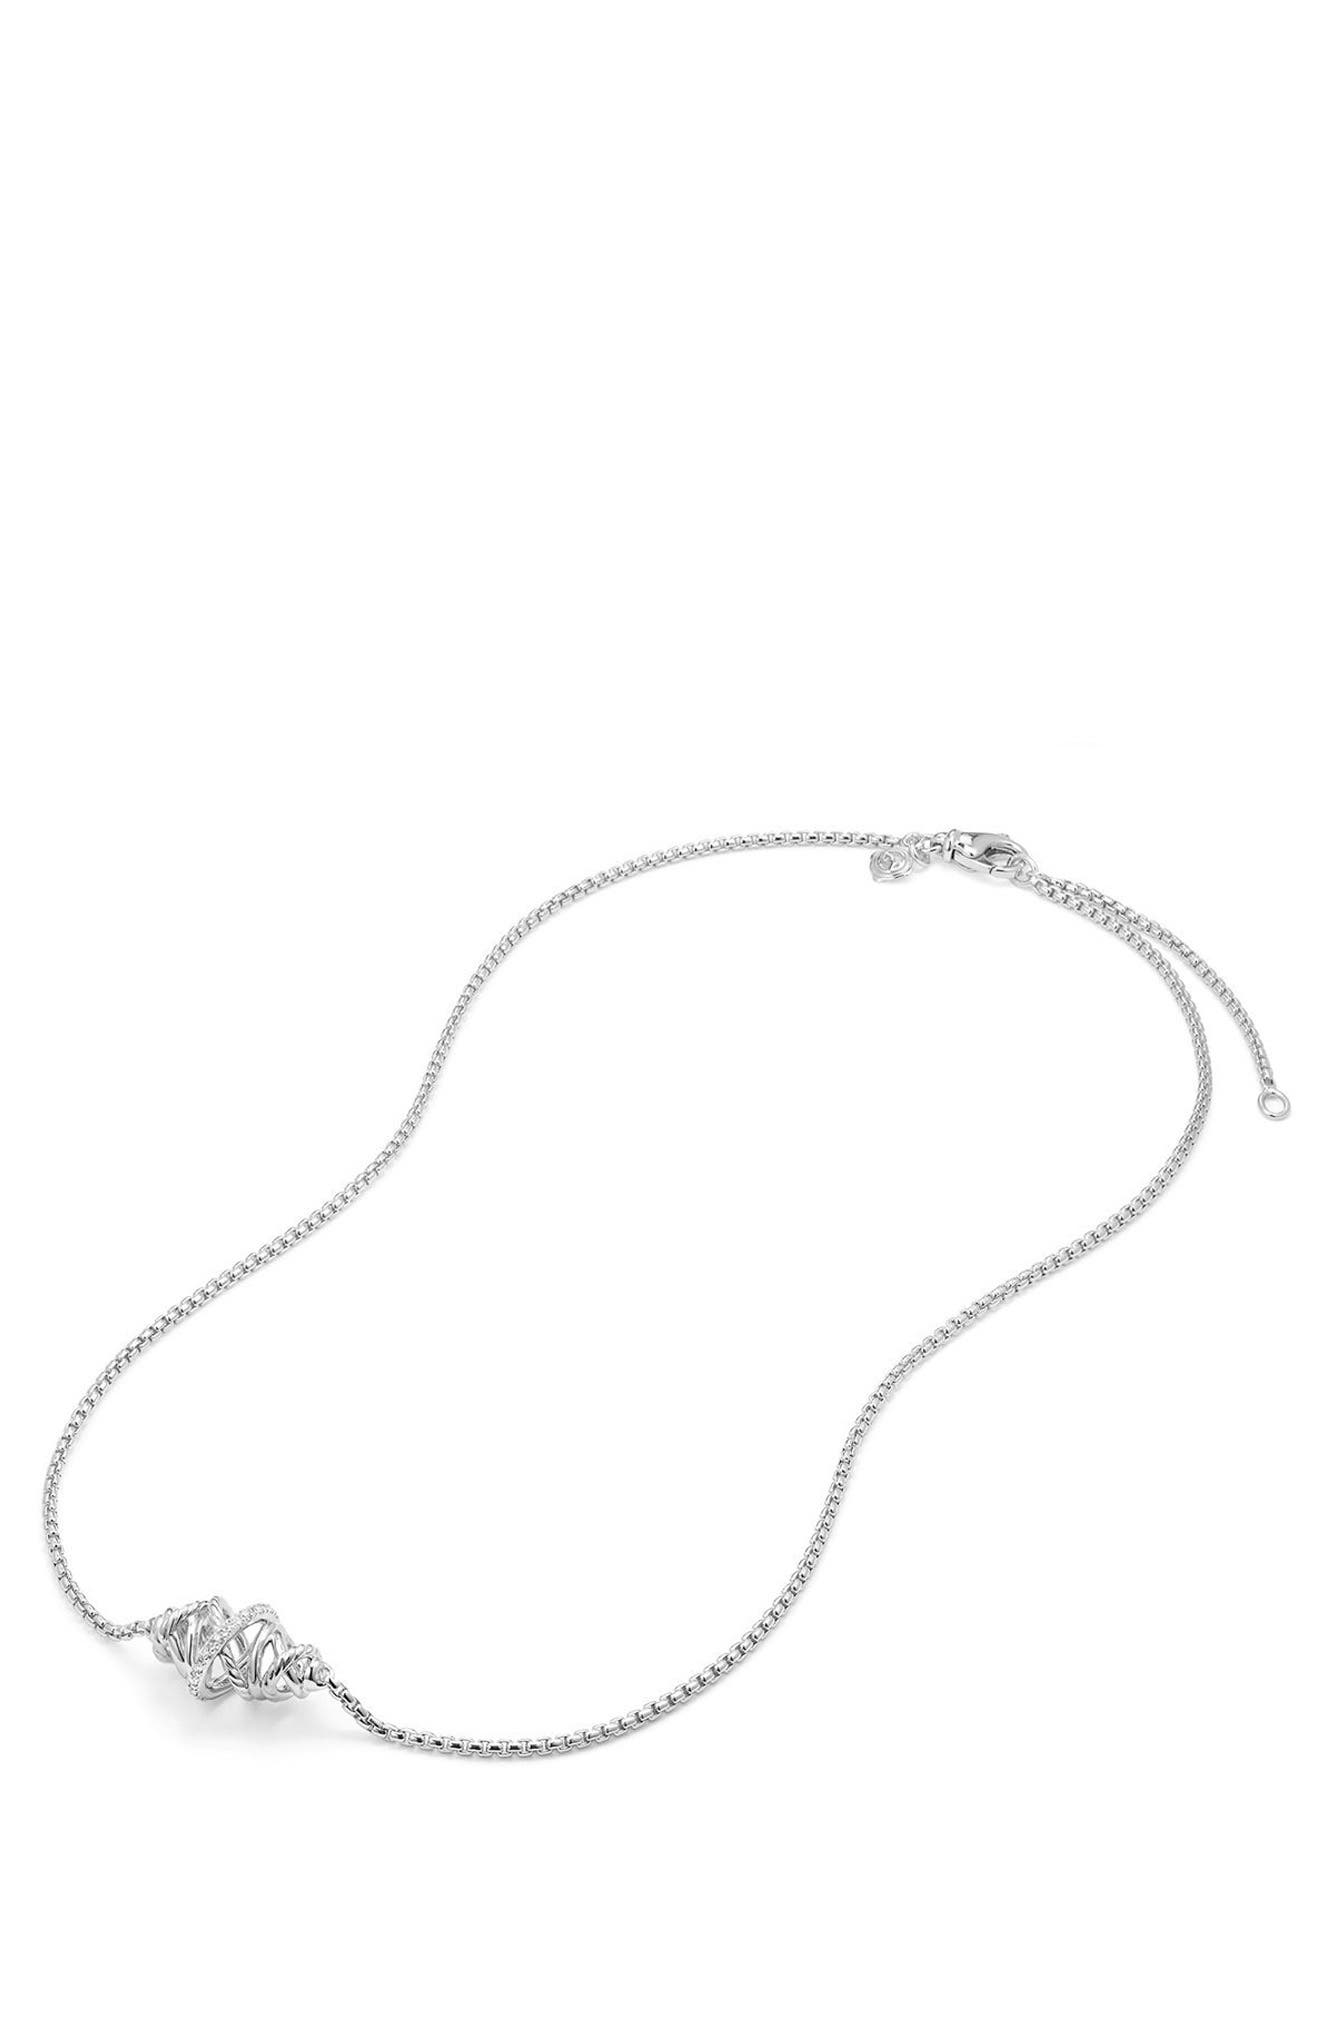 Crossover Single Station Necklace with Diamonds,                             Alternate thumbnail 3, color,                             SILVER